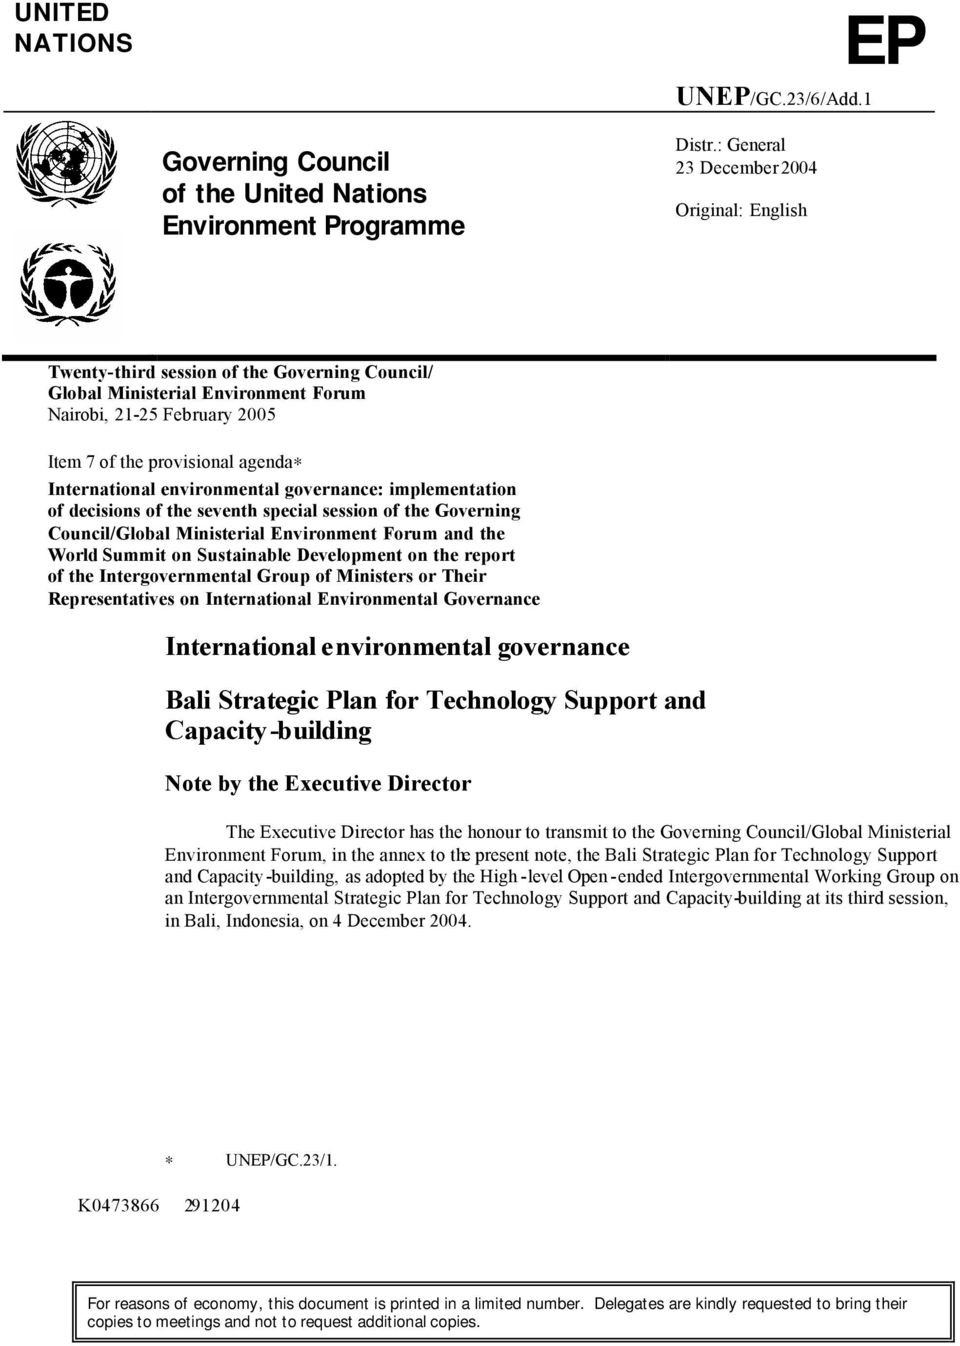 International environmental governance: implementation of decisions of the seventh special session of the Governing Council/Global Ministerial Environment Forum and the World Summit on Sustainable